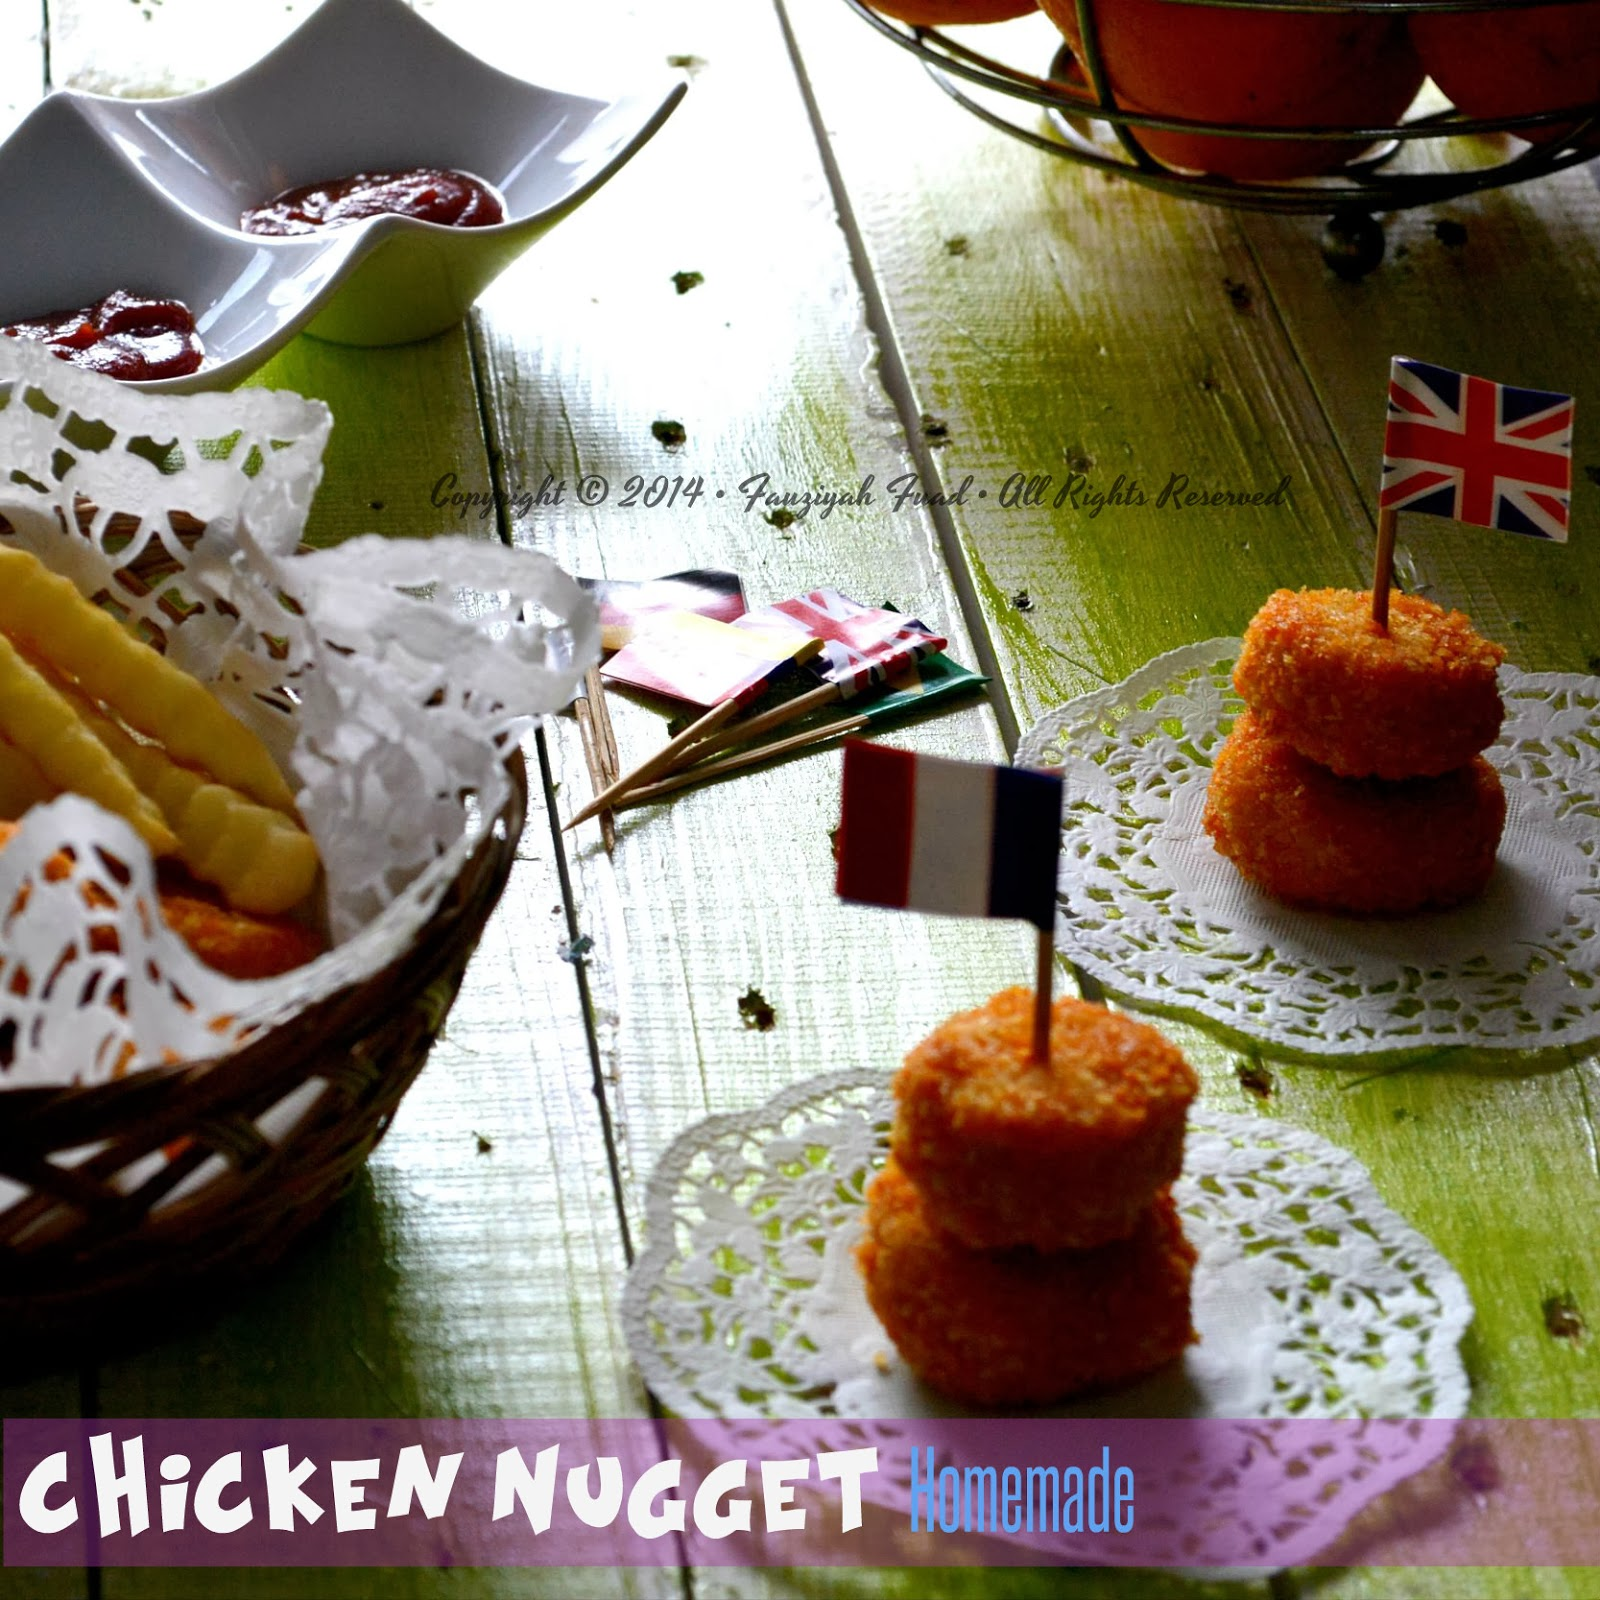 Nugget Adalah: From My Little Kitchen: Chicken Nugget [Homemade]